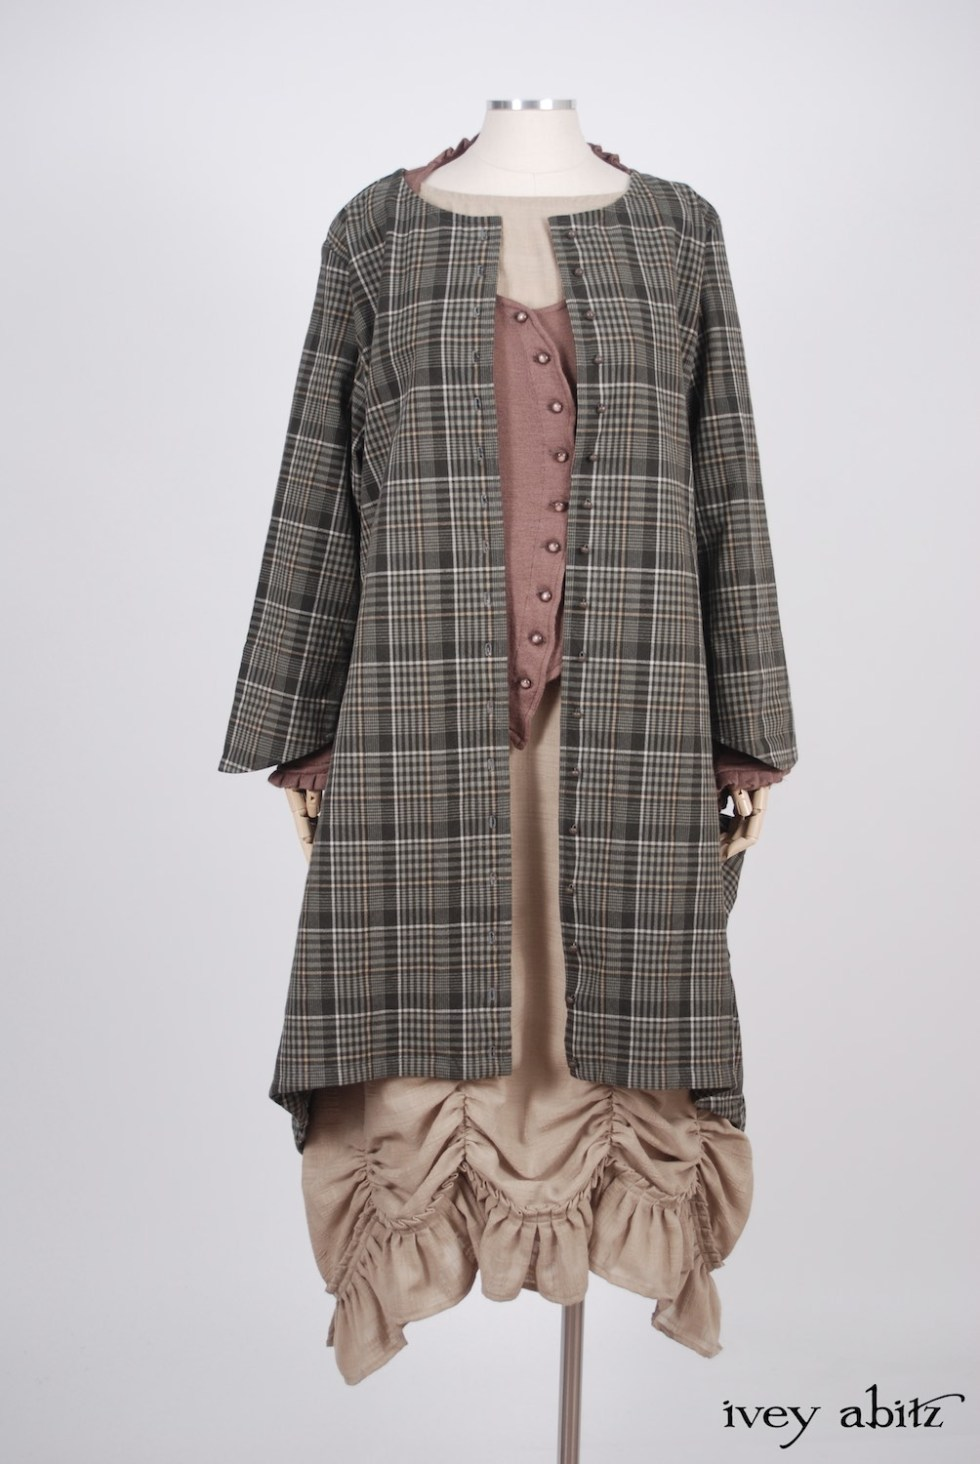 Ivey Abitz - Wildefield Duster Coat in Meadow Stretchy Plaid Cotton, High Water Length - Canterbury Cardigan in Blushed Cashmere Knit  - Edenshire Frock in Blushed Plaid Weave, High Water Length